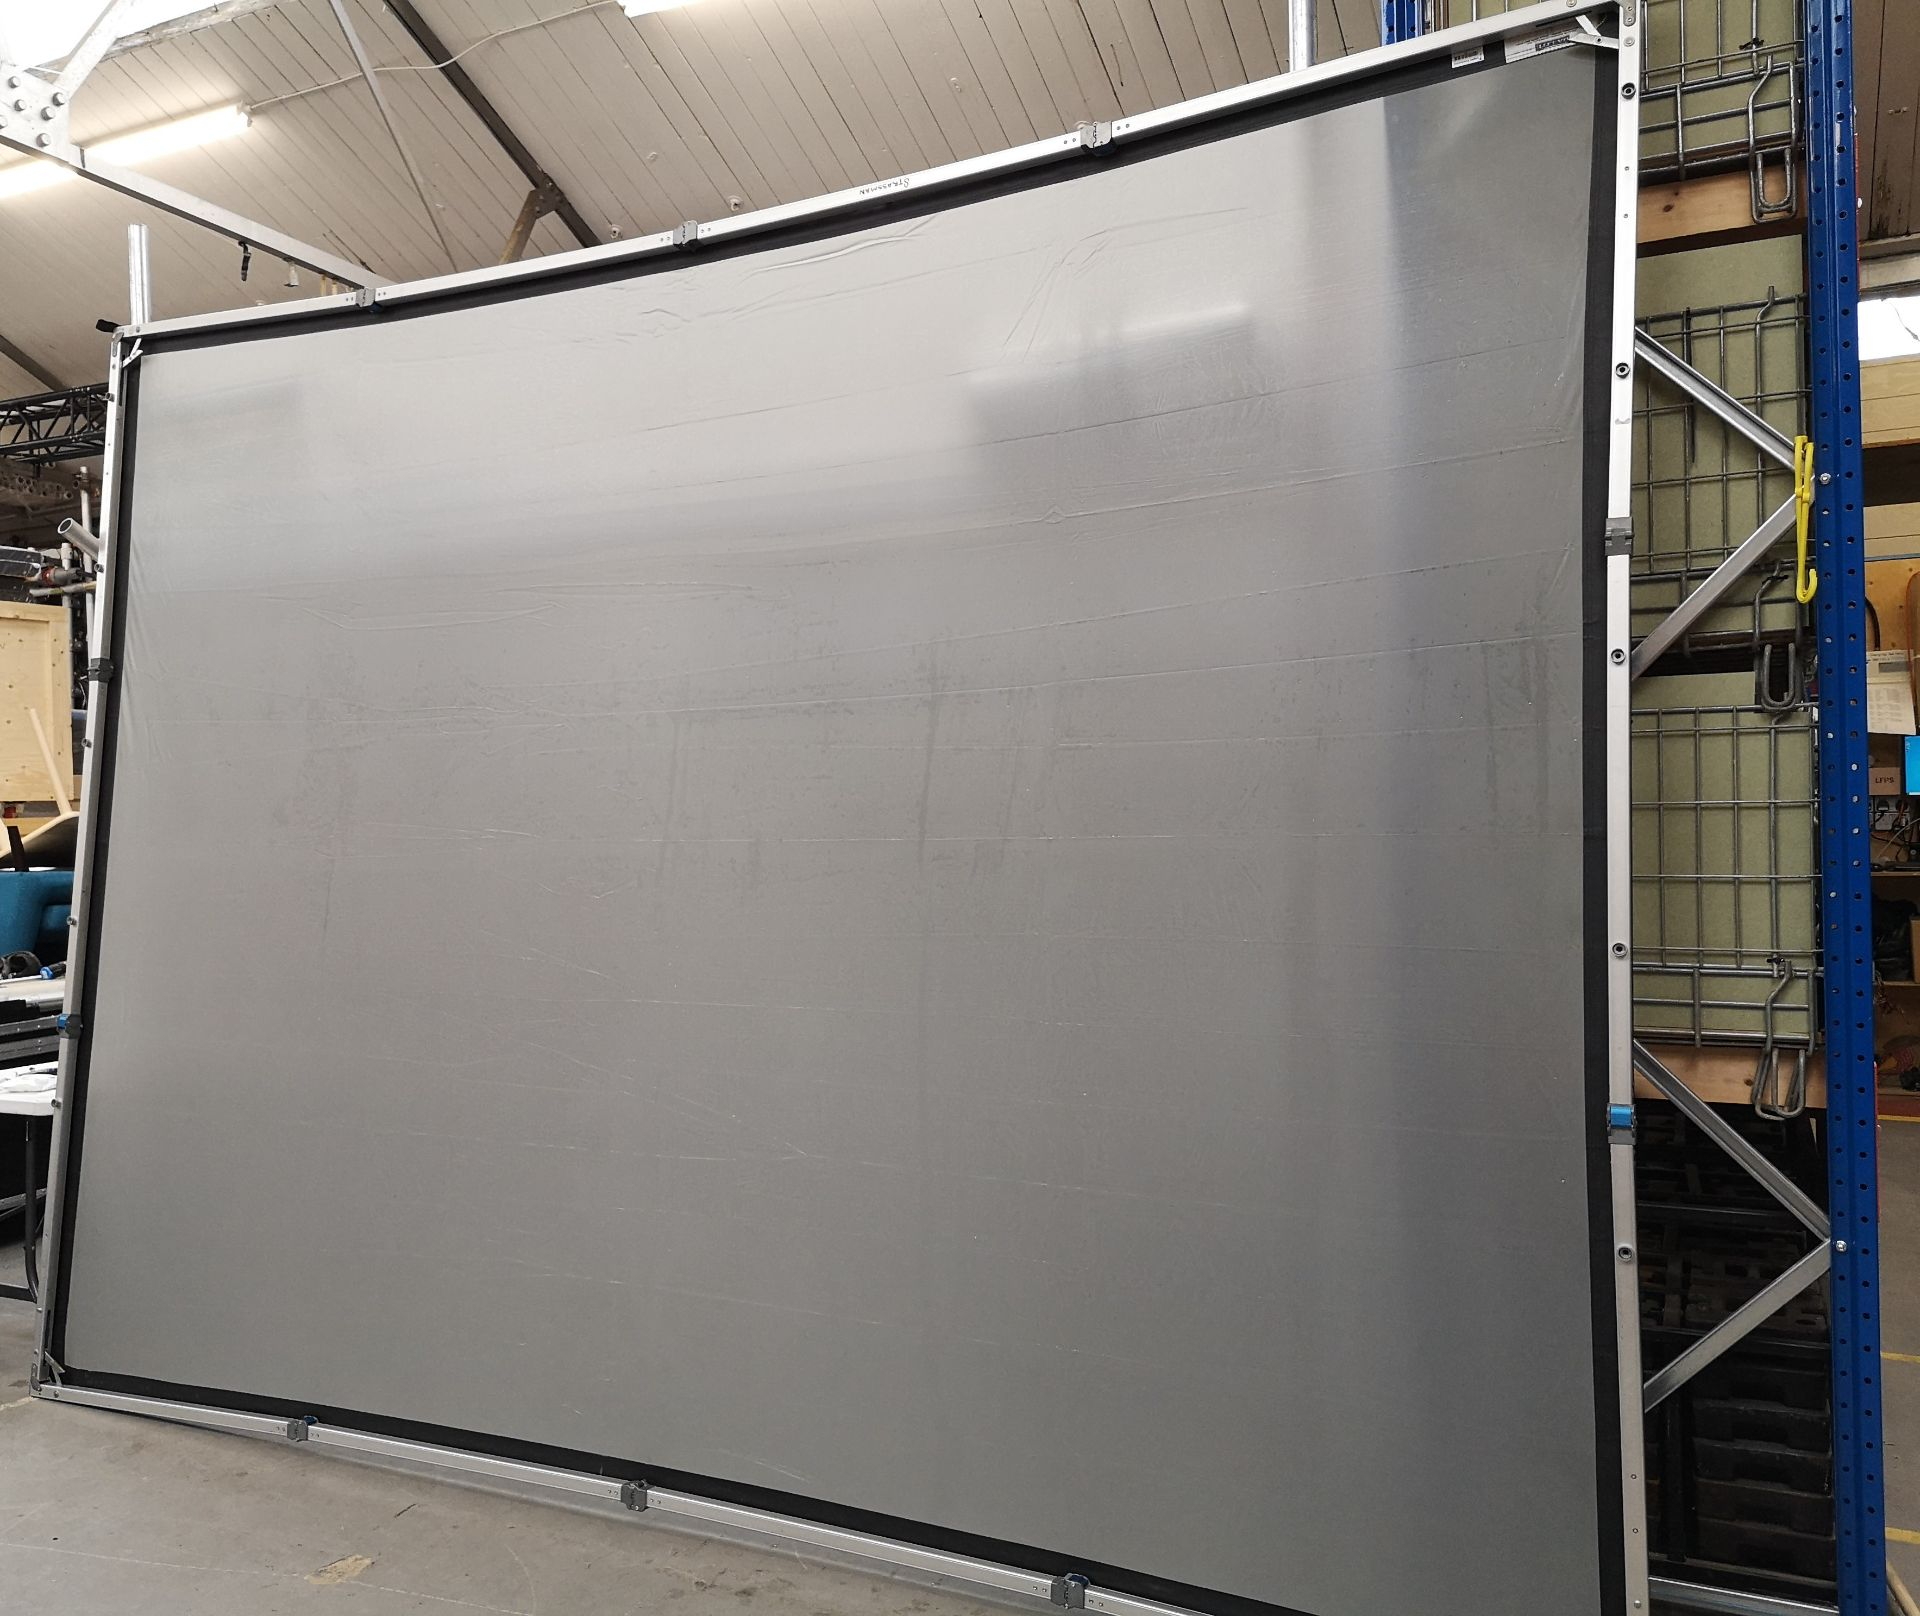 A DA-LITE 12ft x 9ft Rear Projection Fastfold Screen with frame, legs, bolts, screen surface, bag